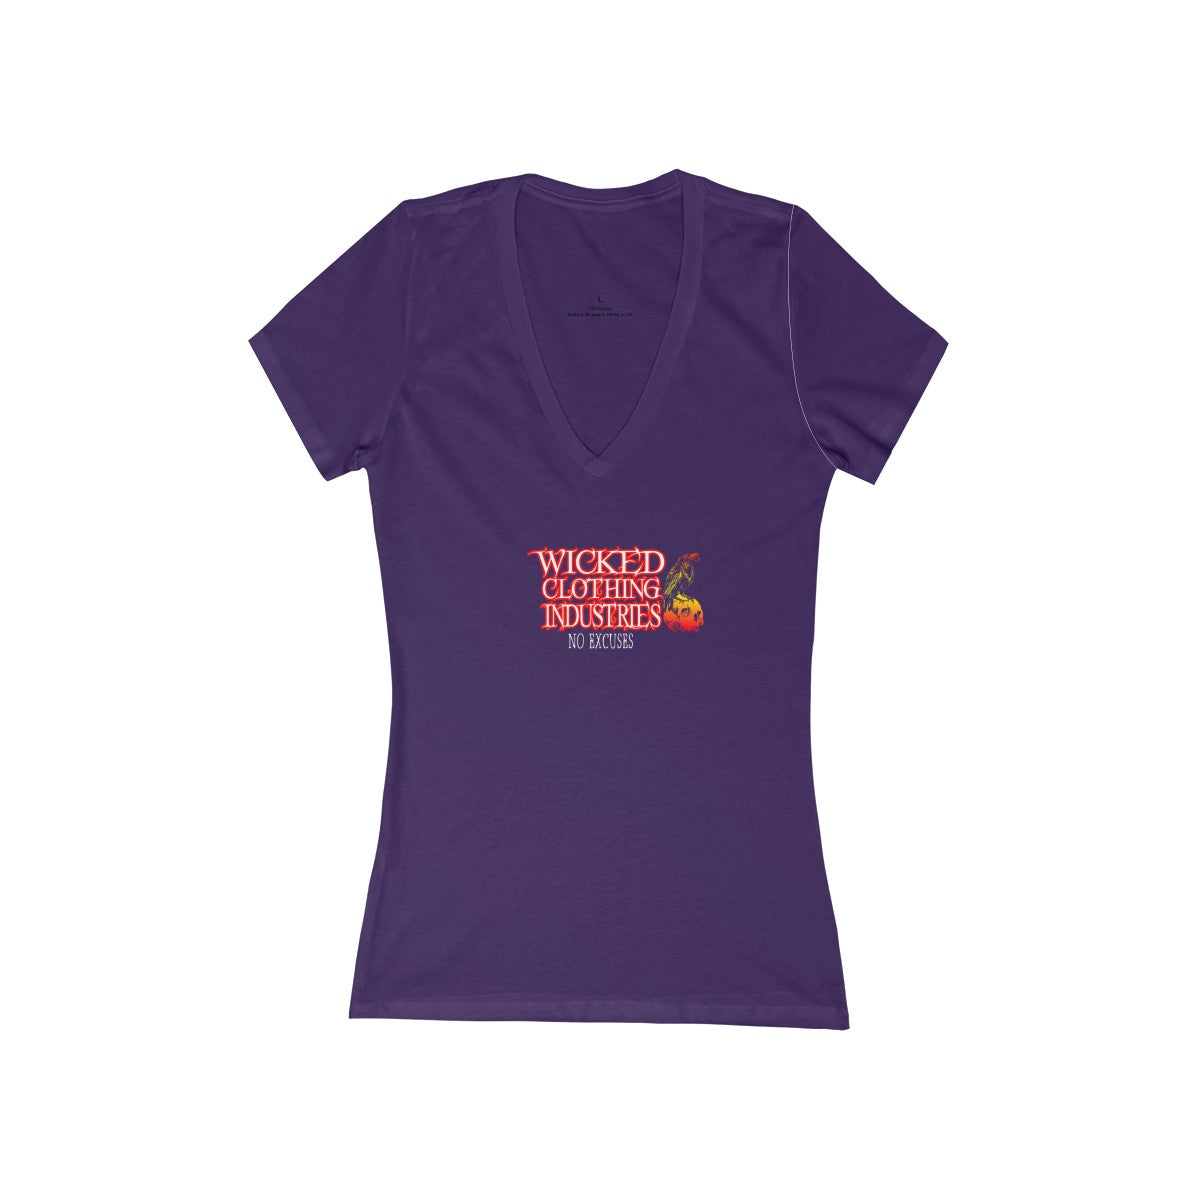 No Excuses/Women's Short Sleeve Deep V-Neck Tee